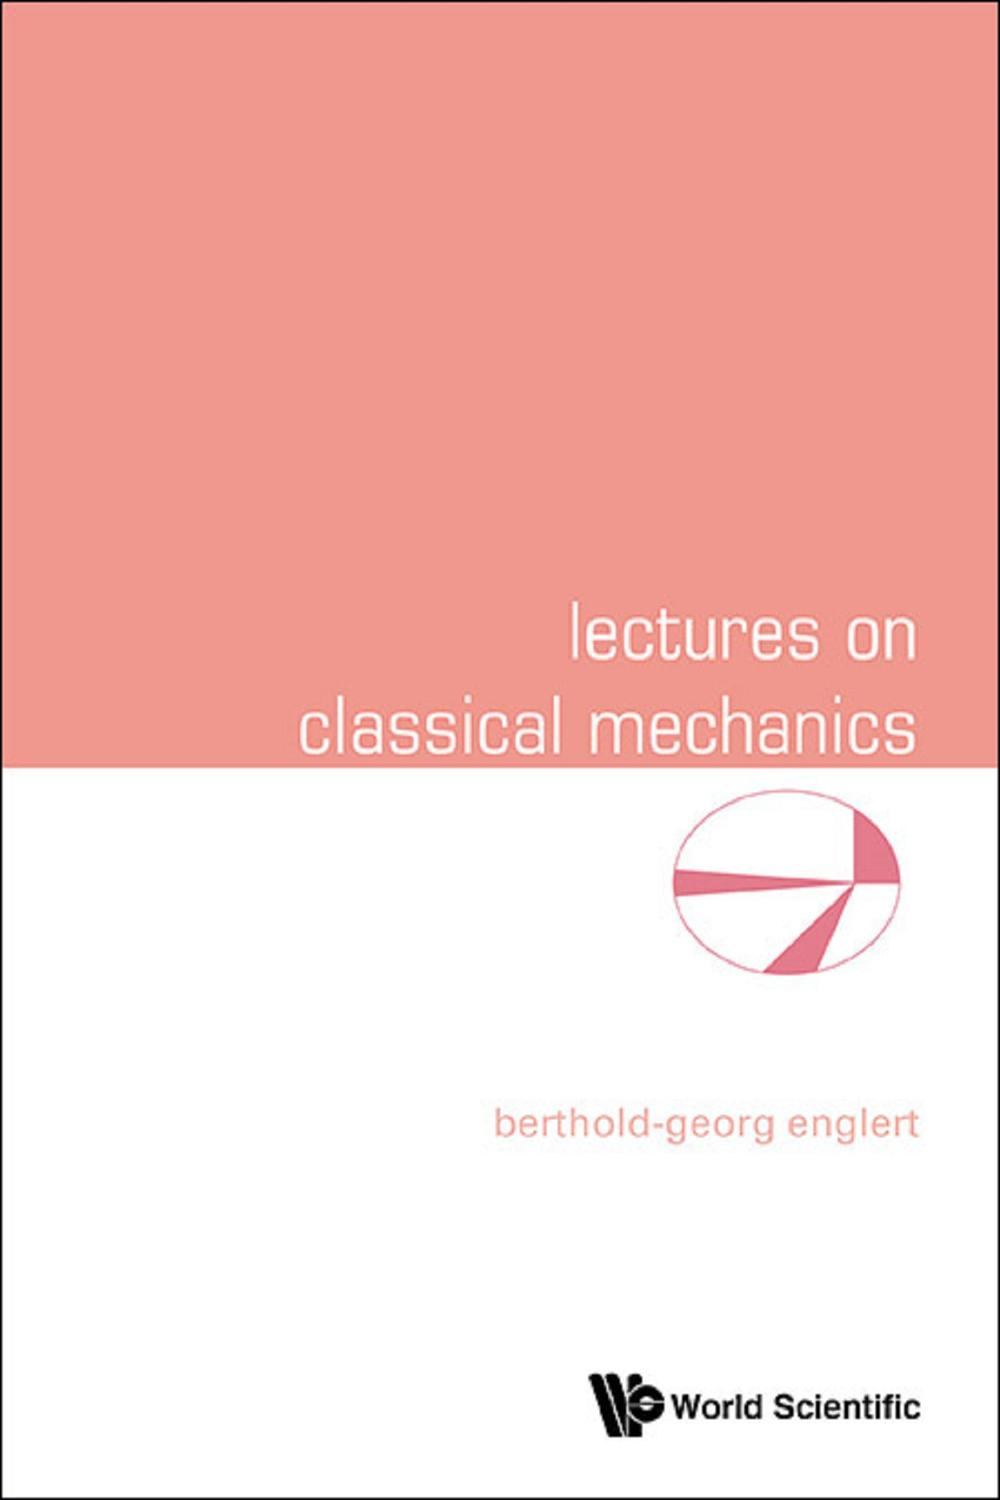 Lectures on Classical Mechanics by Berthold-Georg Englert | Read